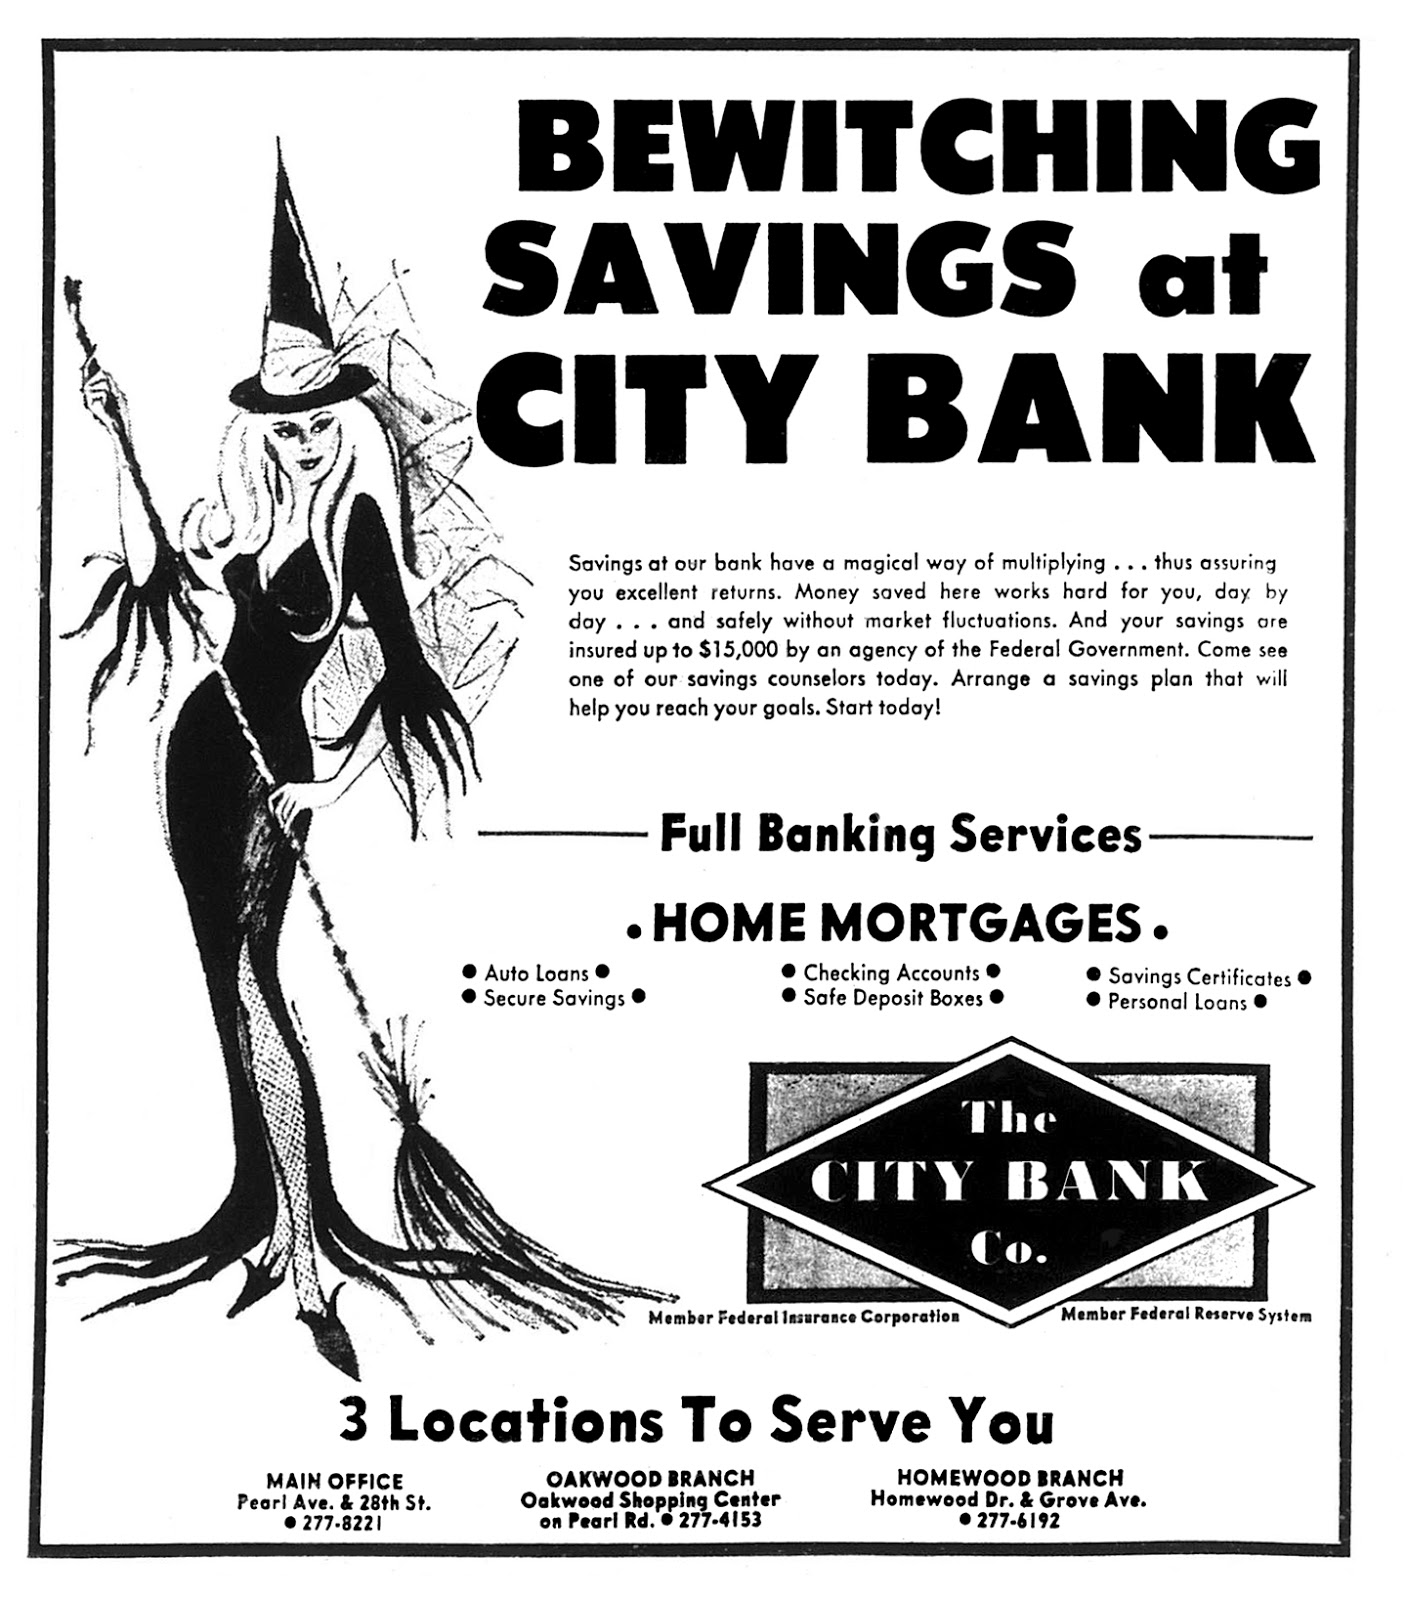 The City Bank Co. - published in the Loriane Journal - October 28, 1967